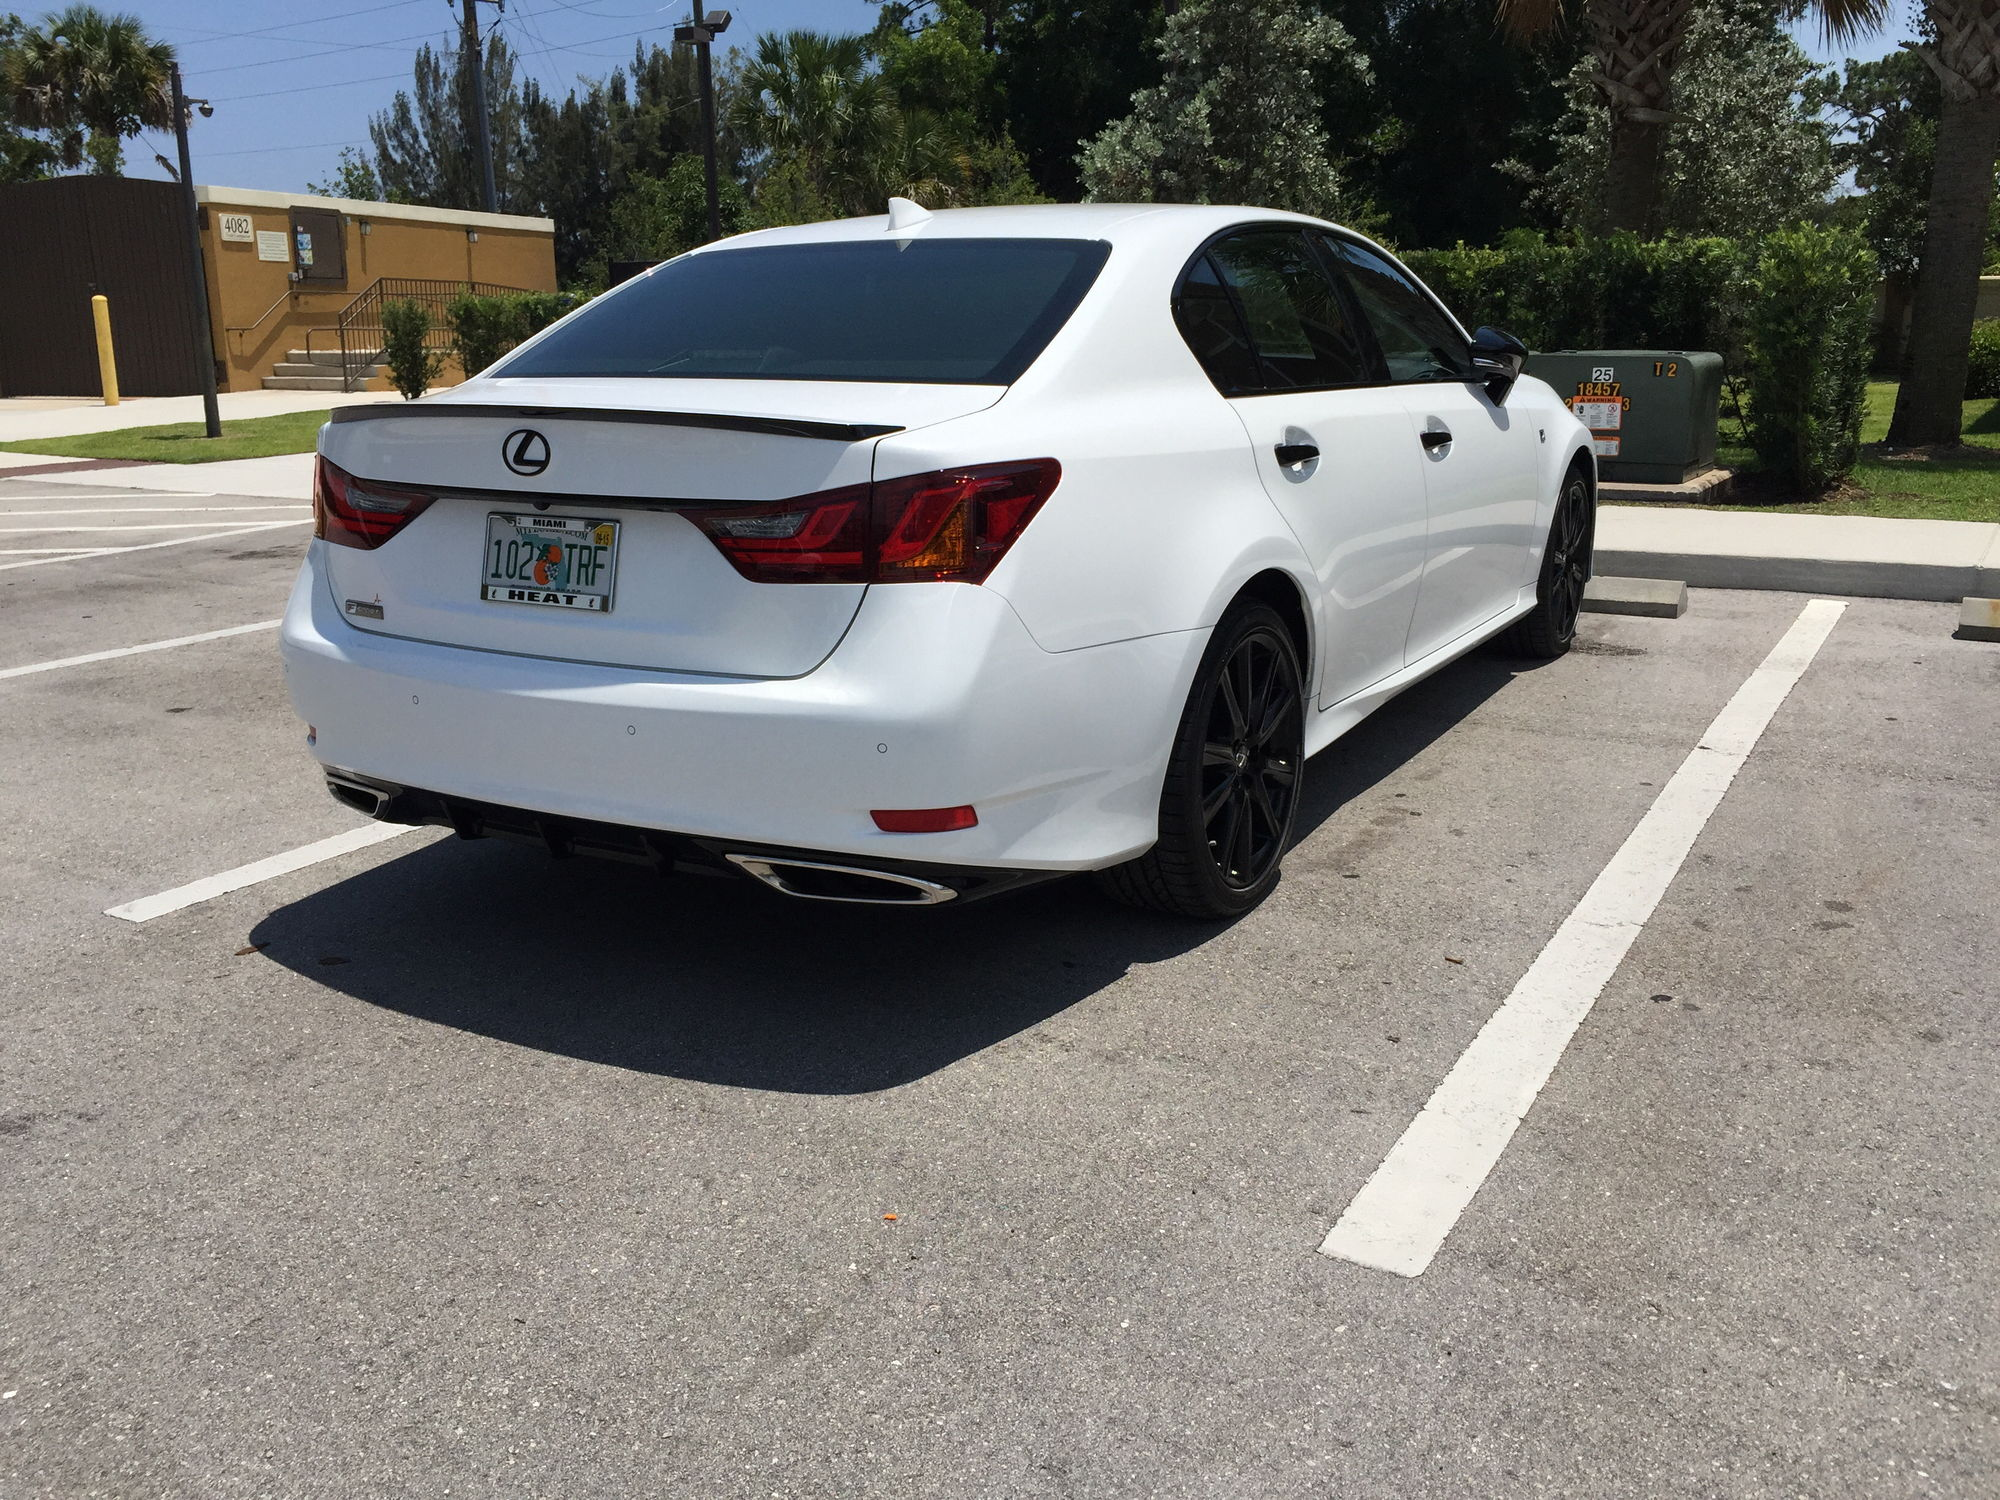 2015 lexus gs 350 f sport crafted edition silly problems with 1000 miles club lexus forums. Black Bedroom Furniture Sets. Home Design Ideas